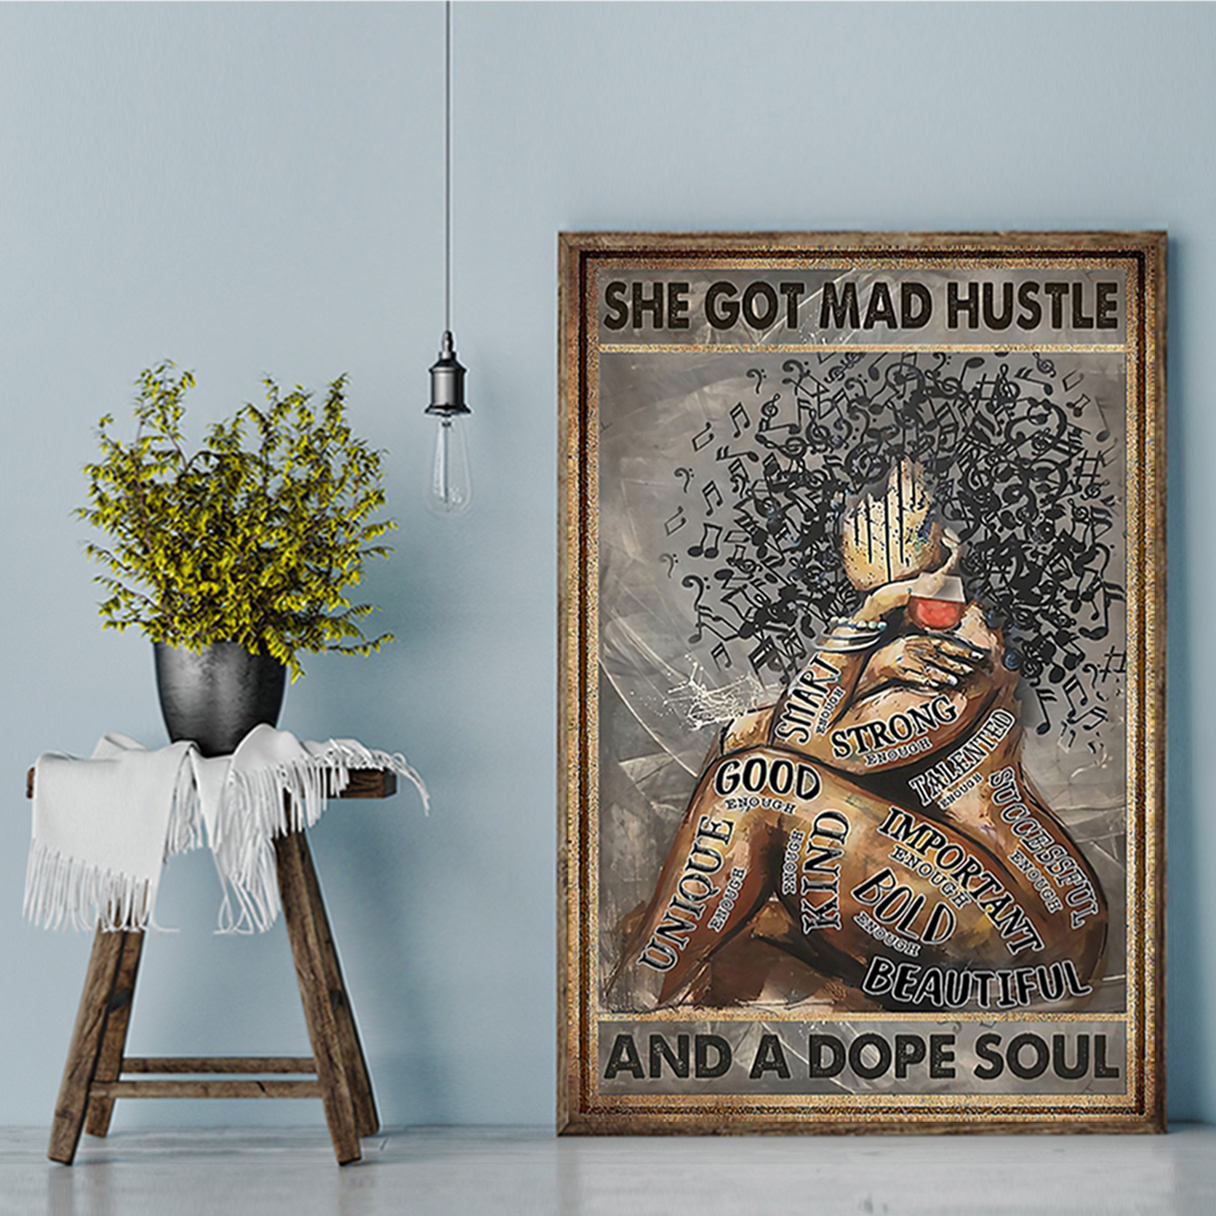 Black woman she got mad hustle and a dope soul poster A1